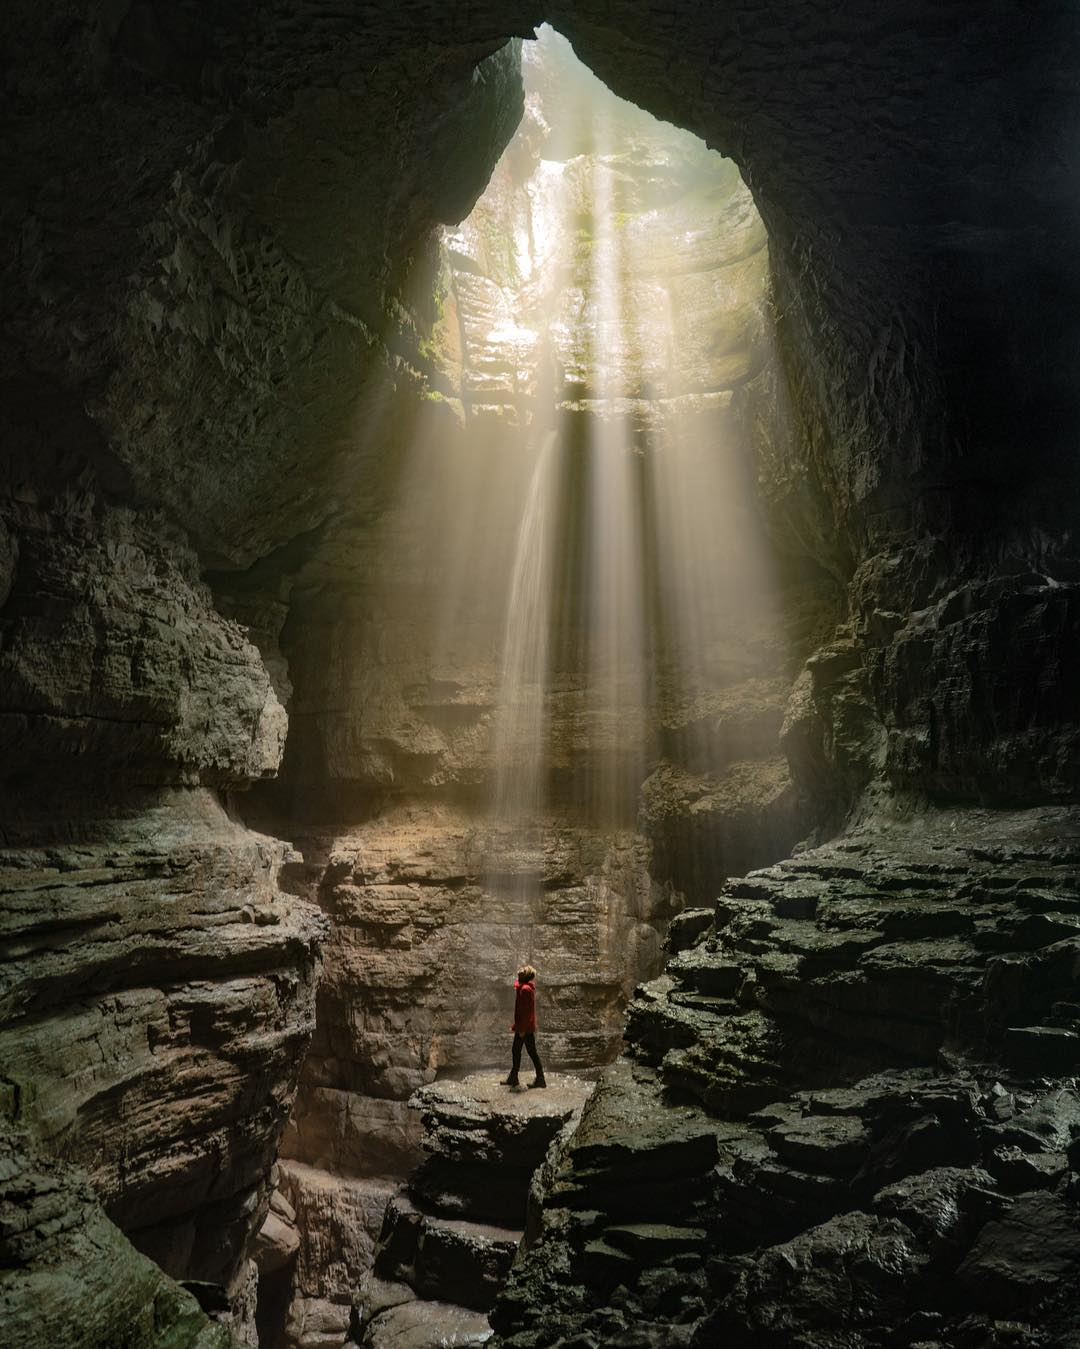 USA Photography, landscape photography Exploring Alabama's Waterfalls & Caves Stephens Gap